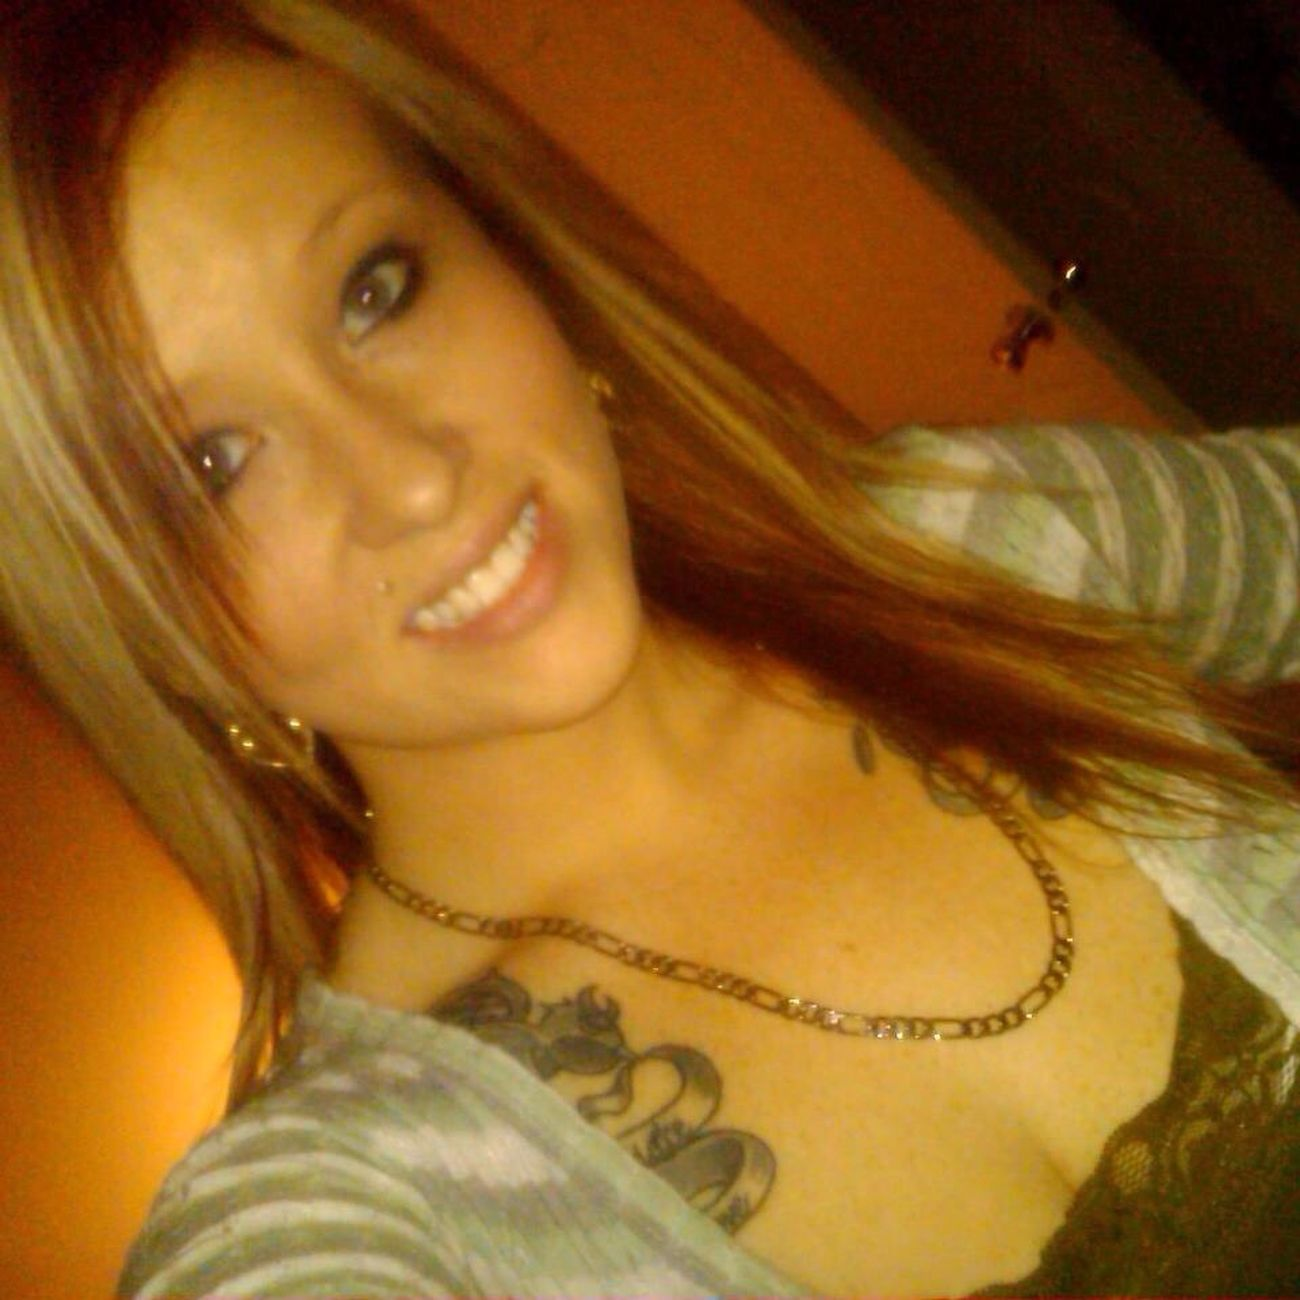 Happy 21 Birthday babygirl! I'll be takin shots for you! Wish you were here, RIH Happy Birthday! I Miss You